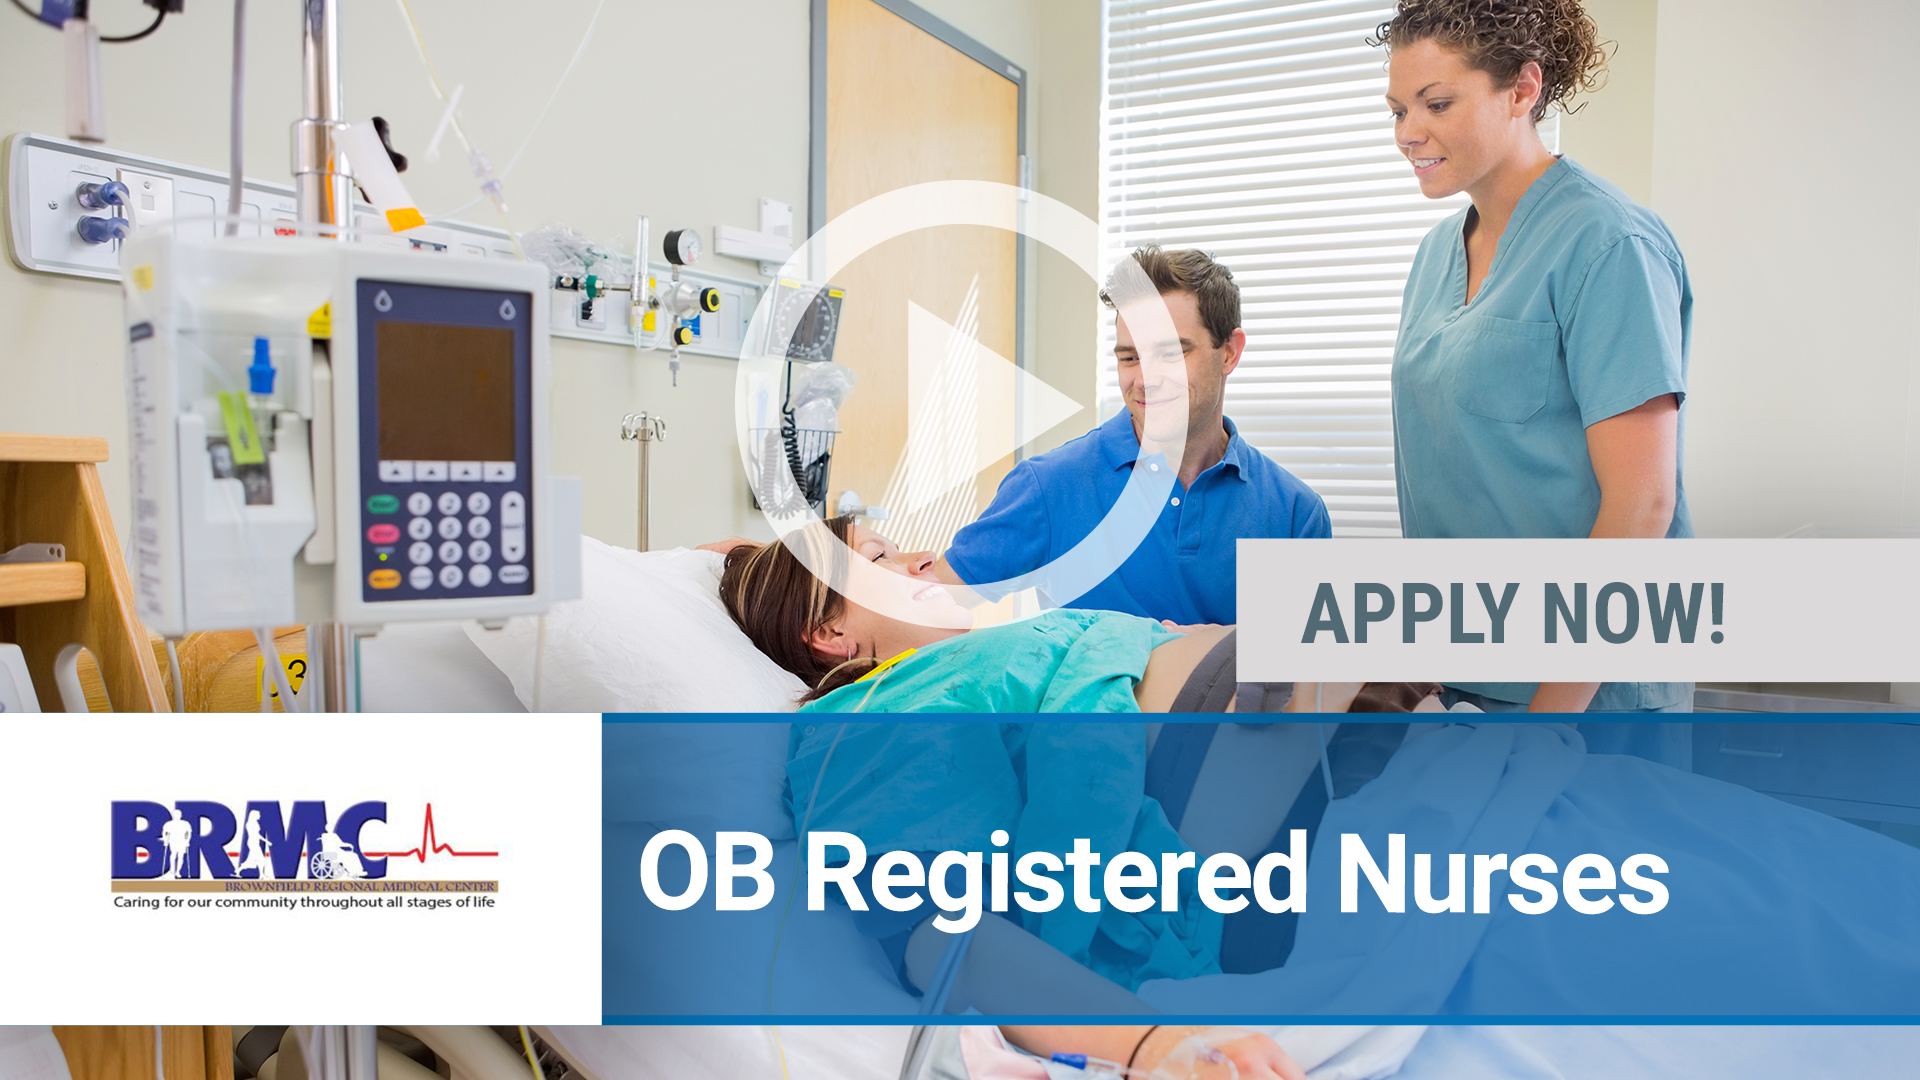 Watch our careers video for available job opening OB Registered Nurses in Amarillo, TX